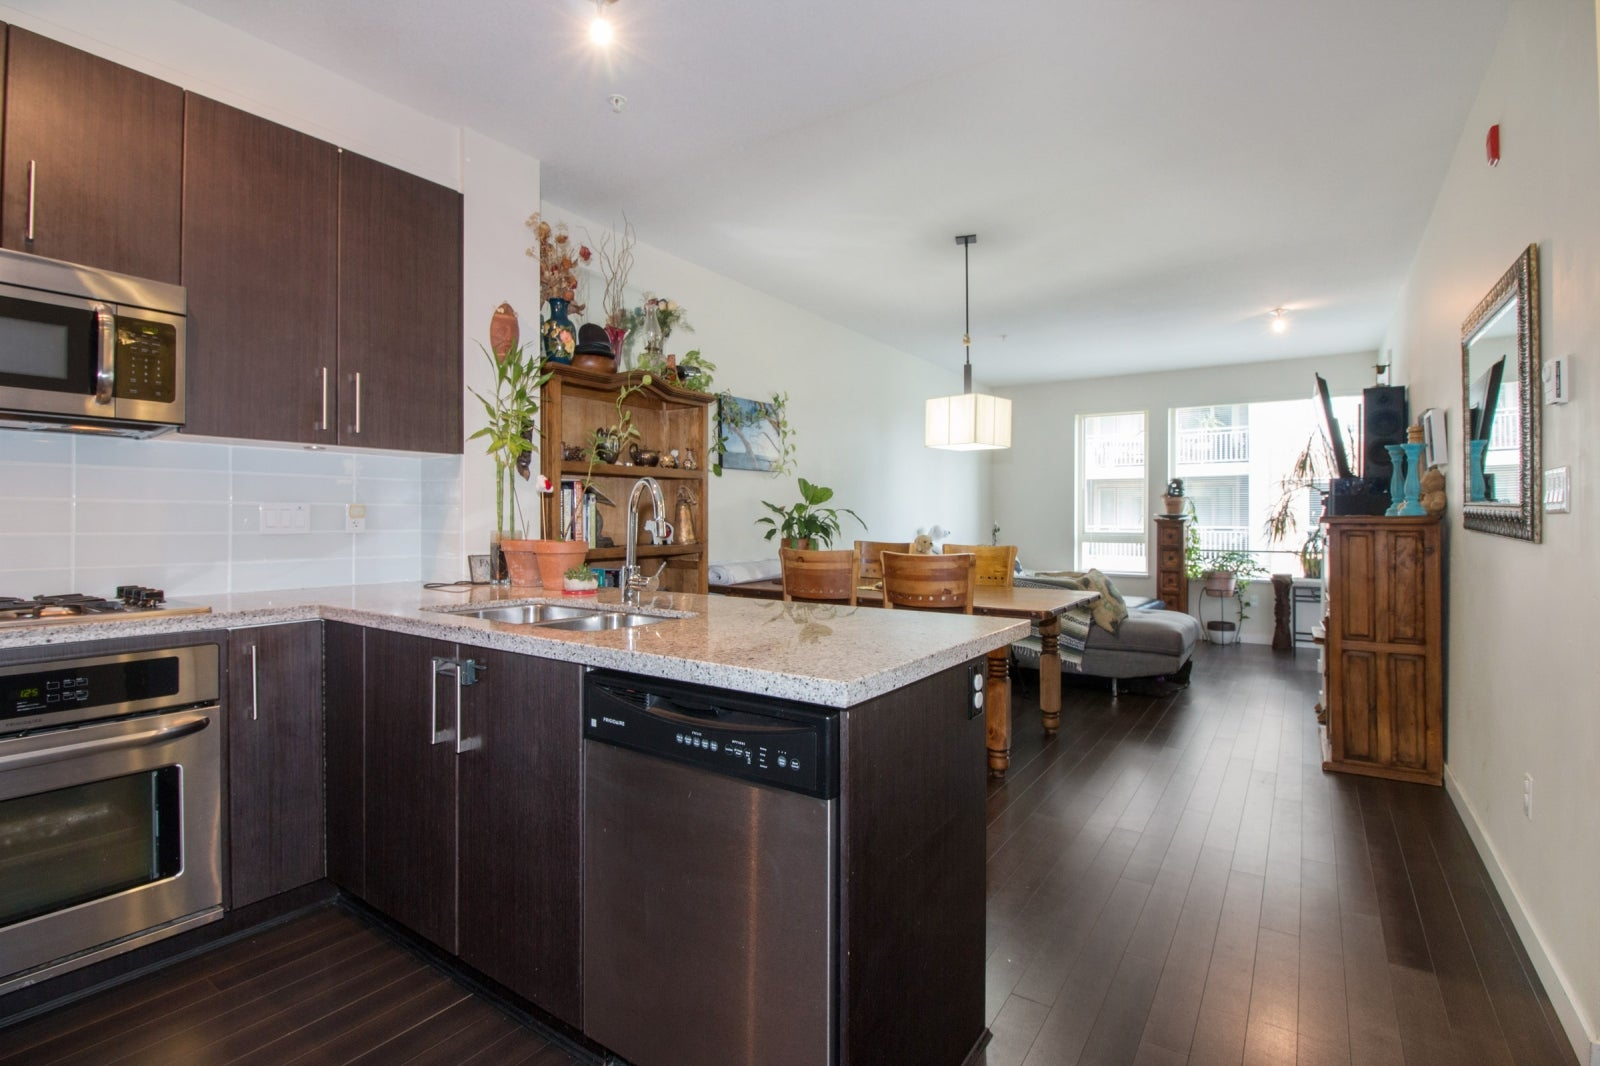 306 139 W 22ND STREET - Central Lonsdale Apartment/Condo for sale, 2 Bedrooms (R2201915) #10